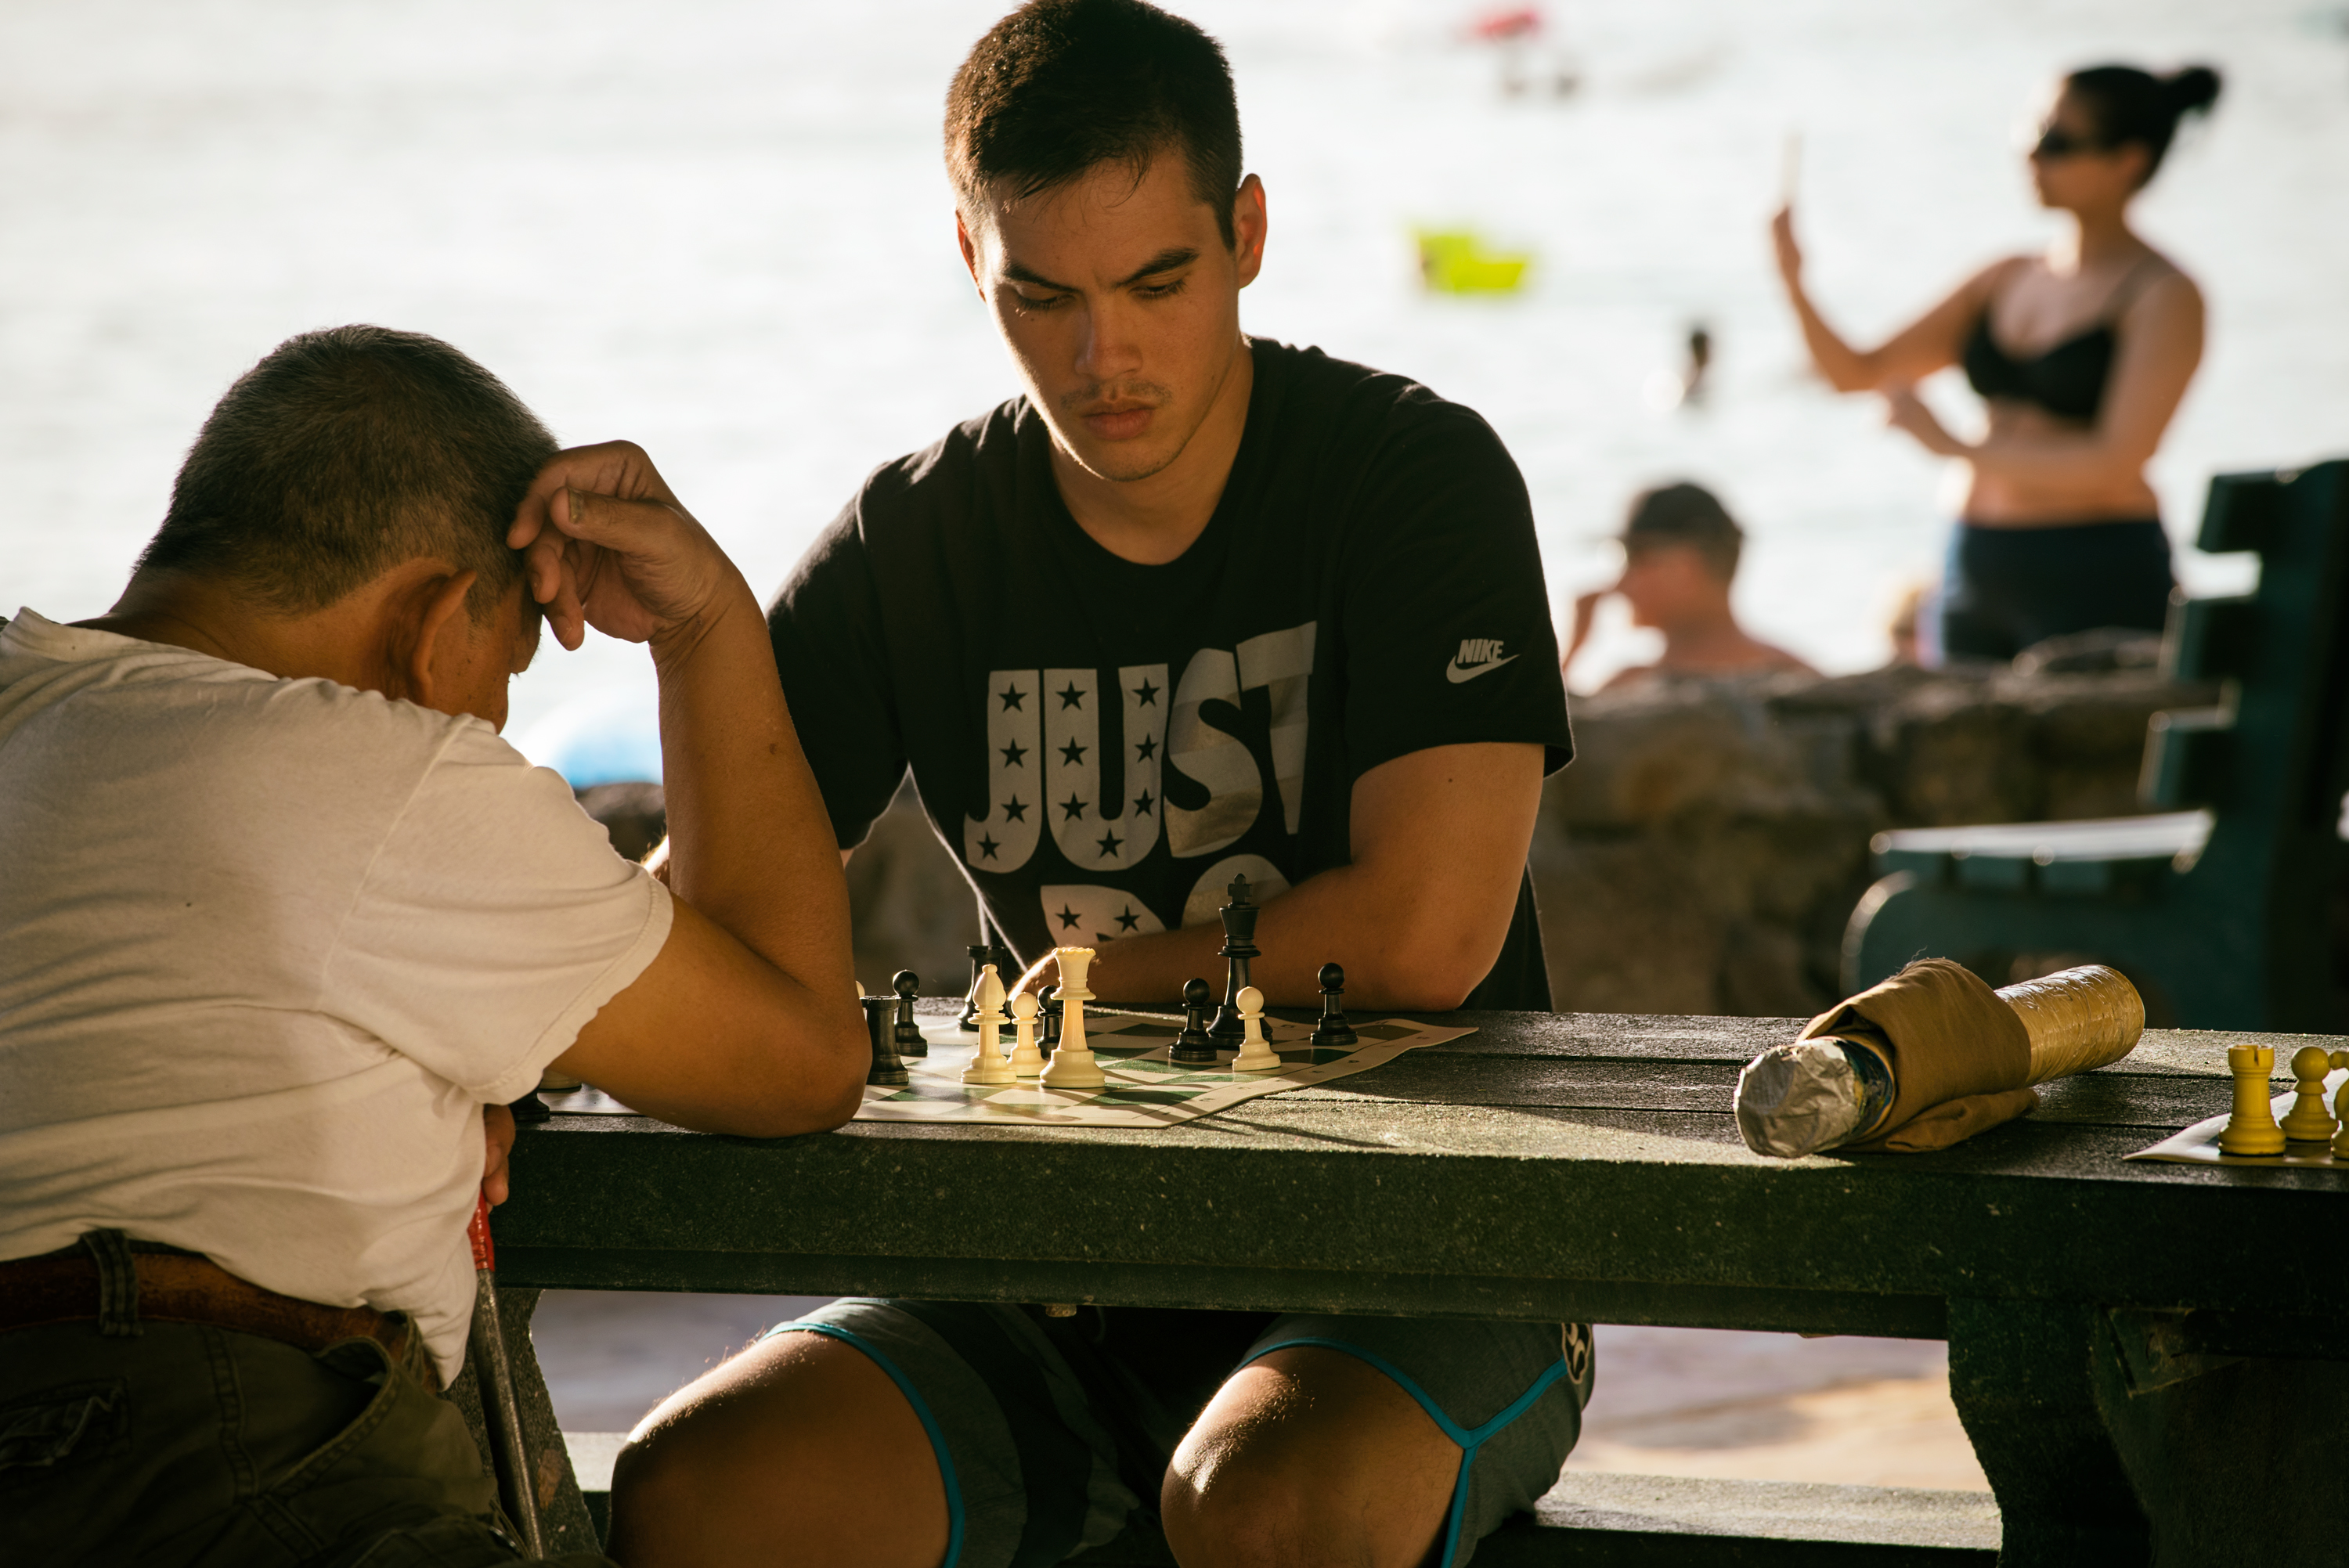 Play Chess at Waikiki Beach